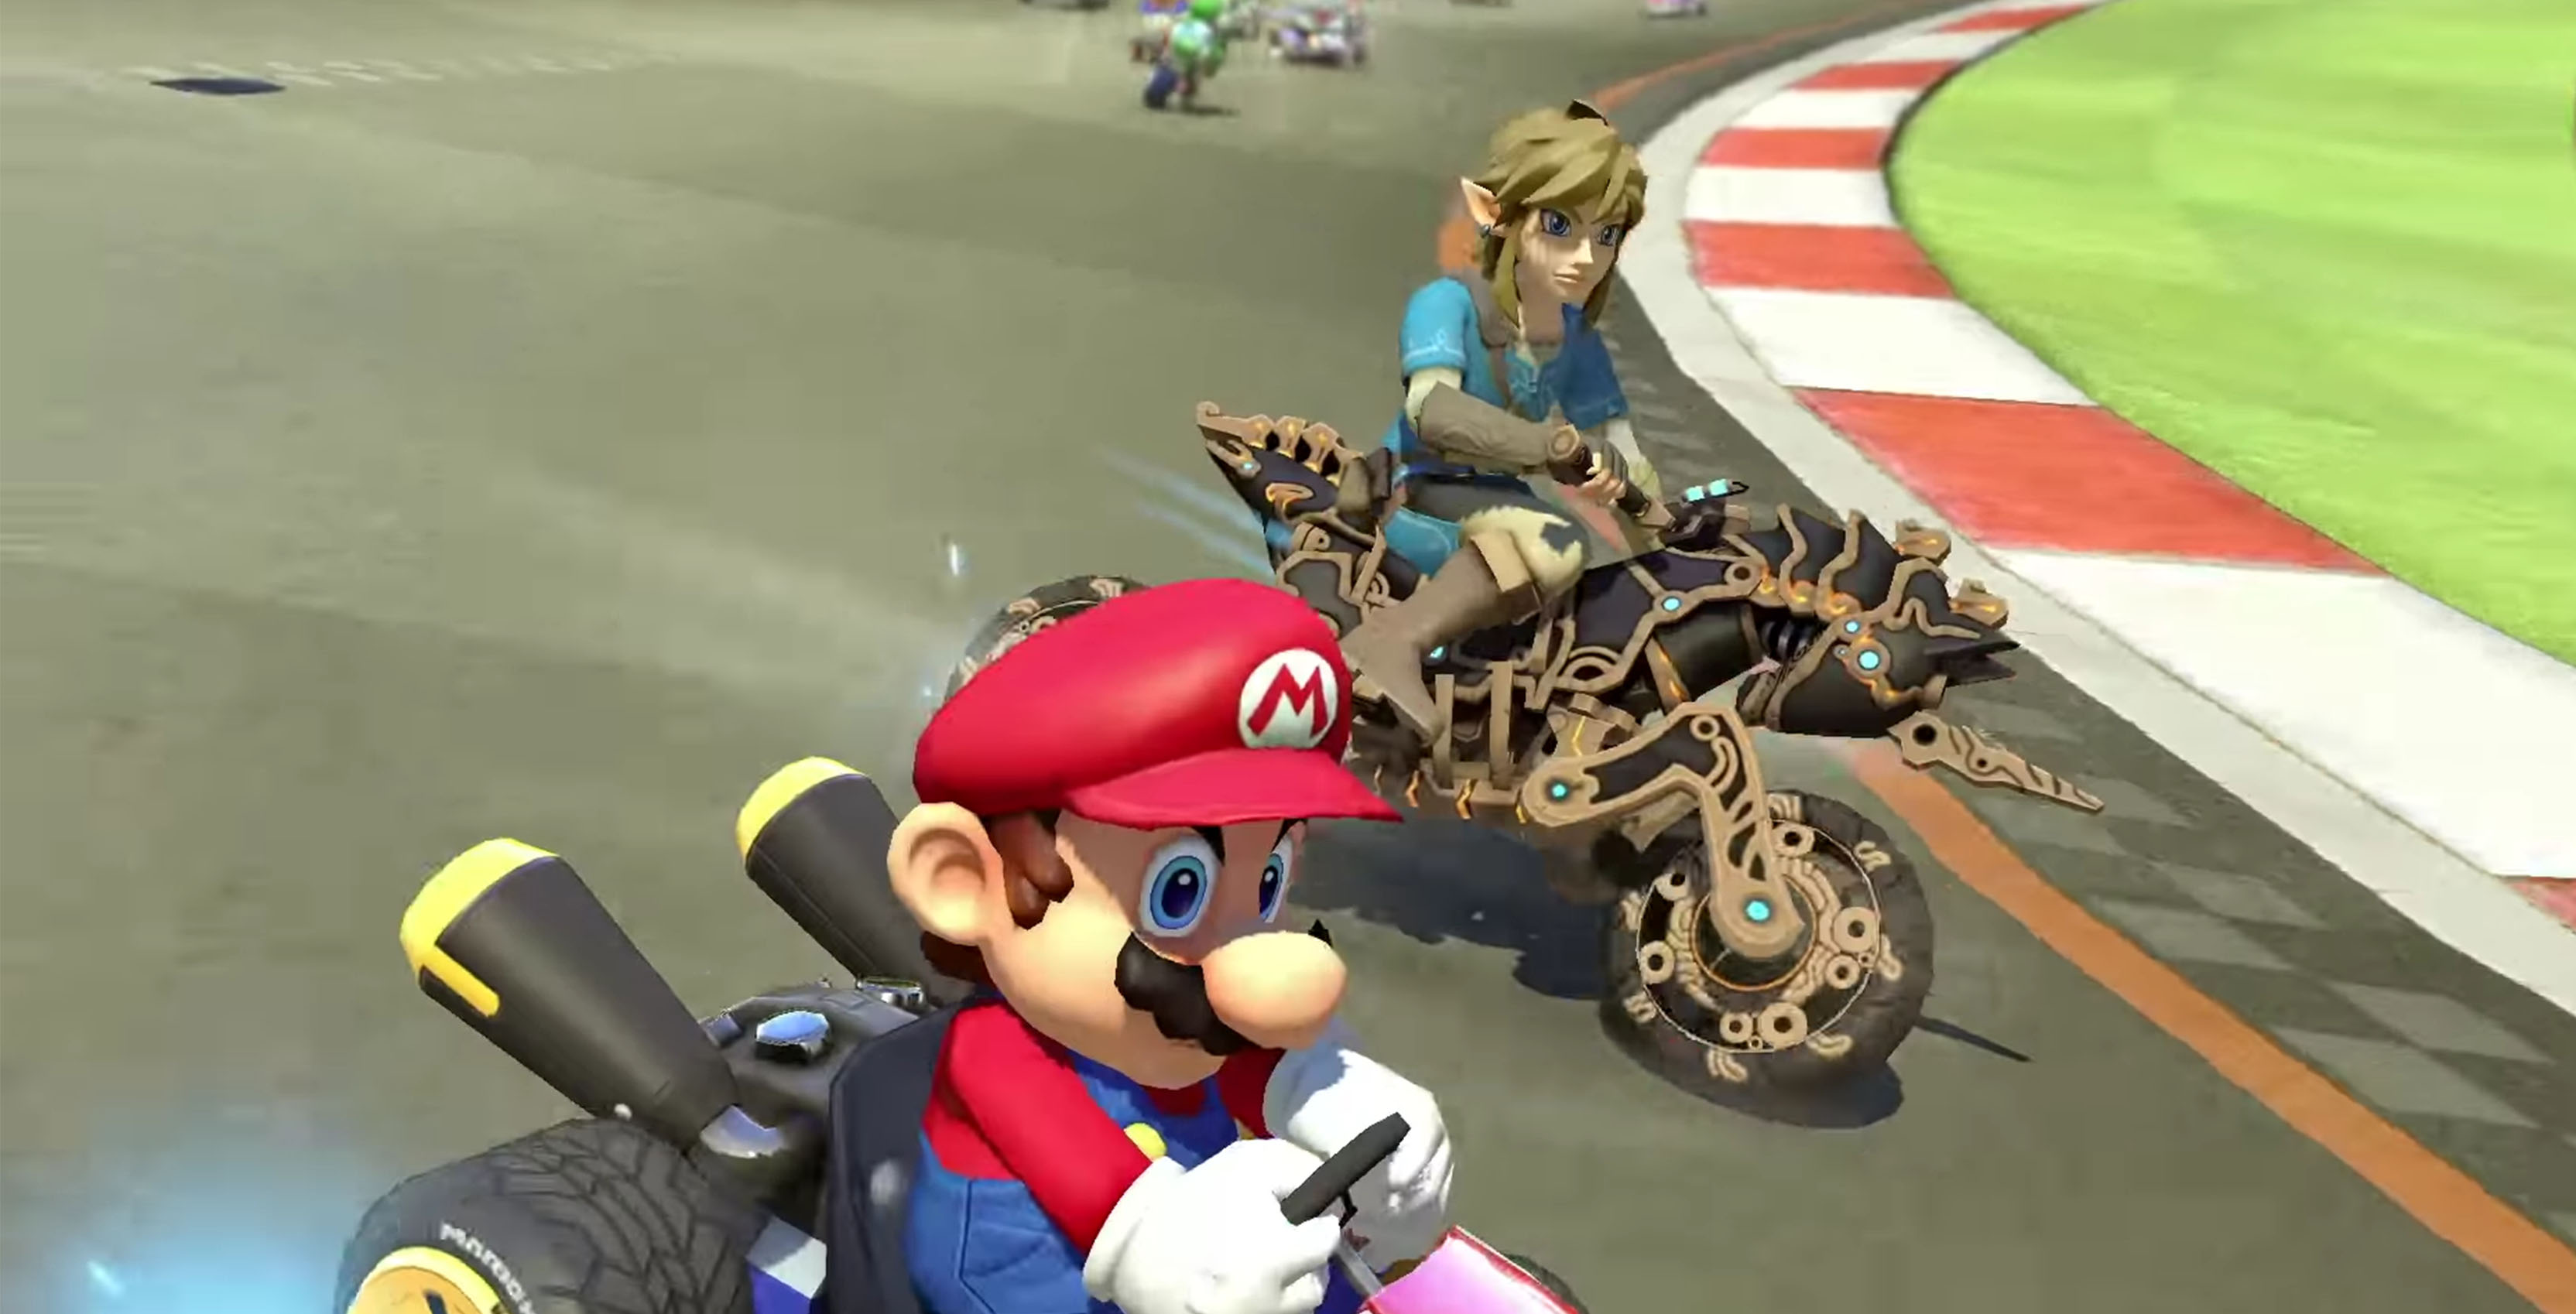 Link rides into mario kart deluxe on his master cycle zero